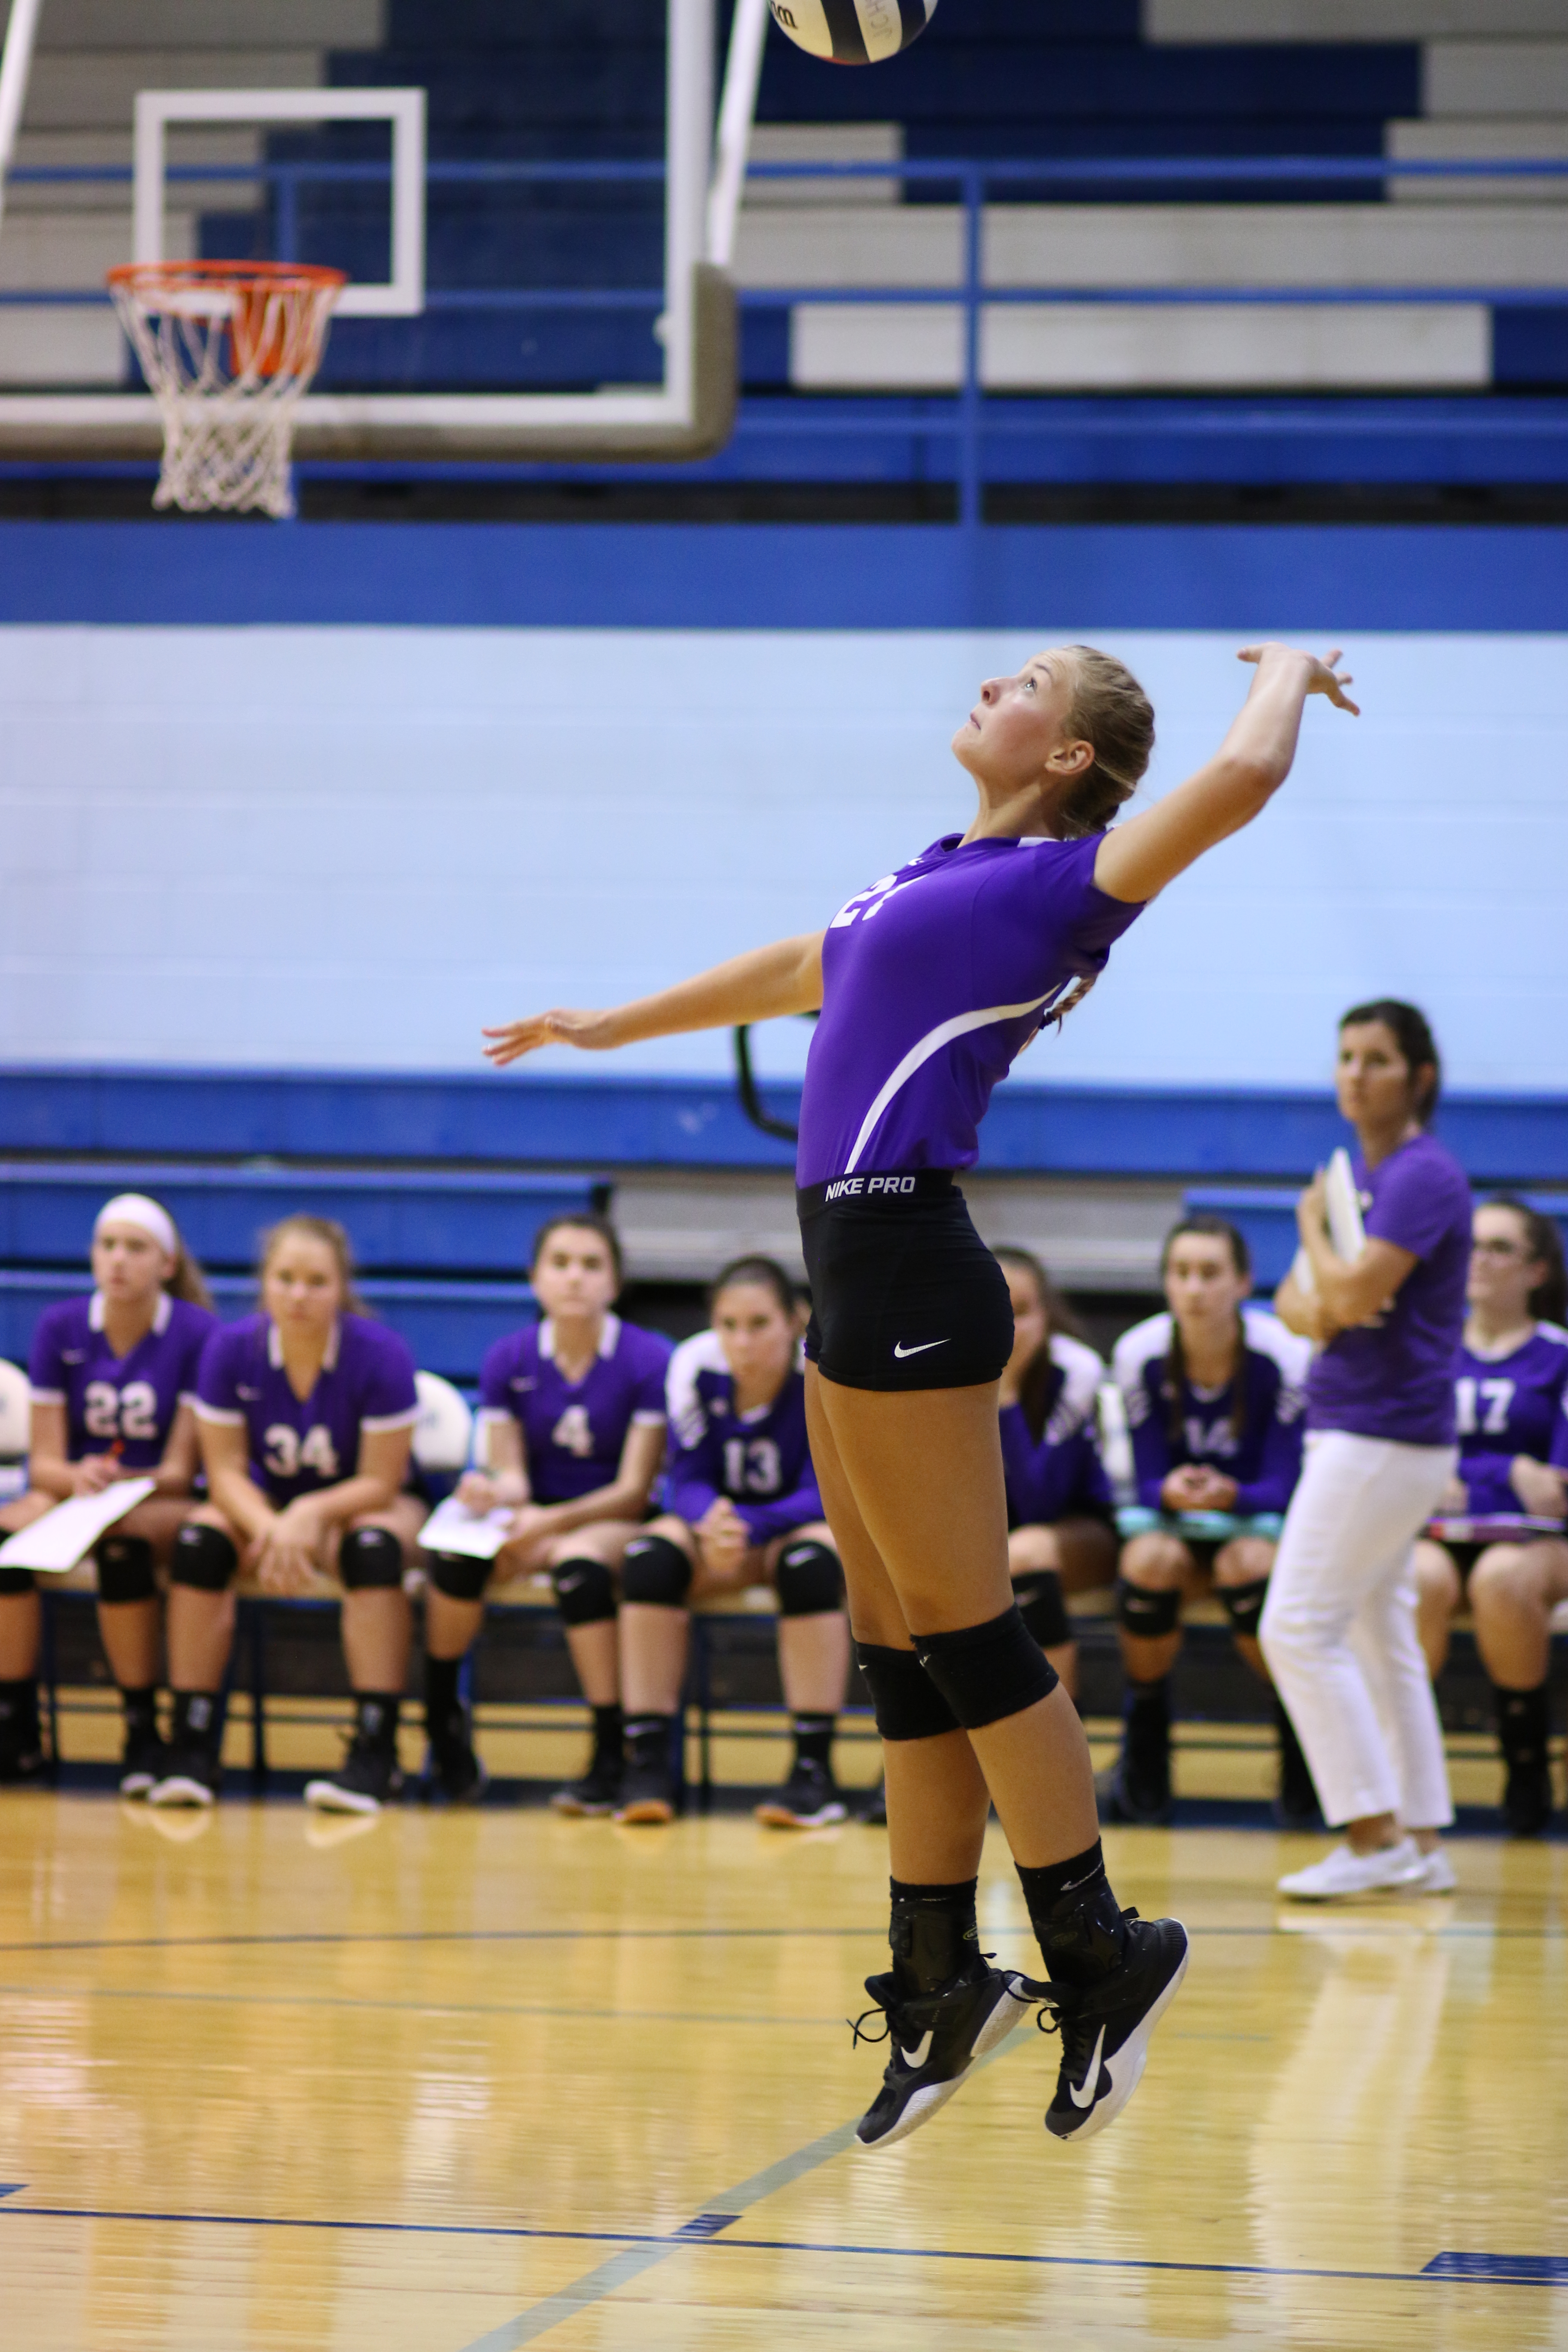 Lady Tigers Volleyball Wins Again